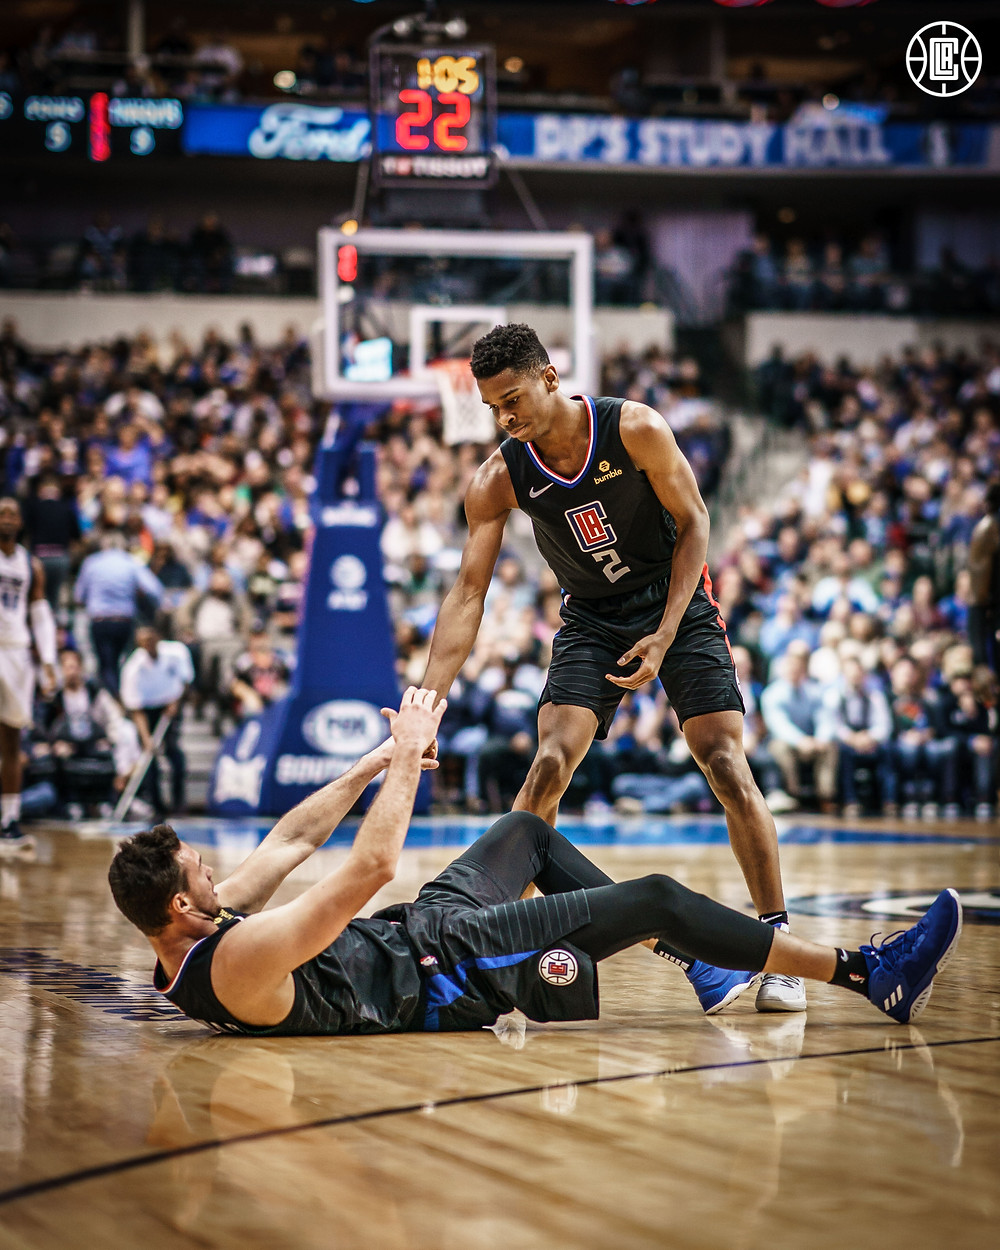 Danilo_Gallinari_Shai_Gilgeous-Alexander_Los_Angeles_Clippers_NBA_Around_The_Game